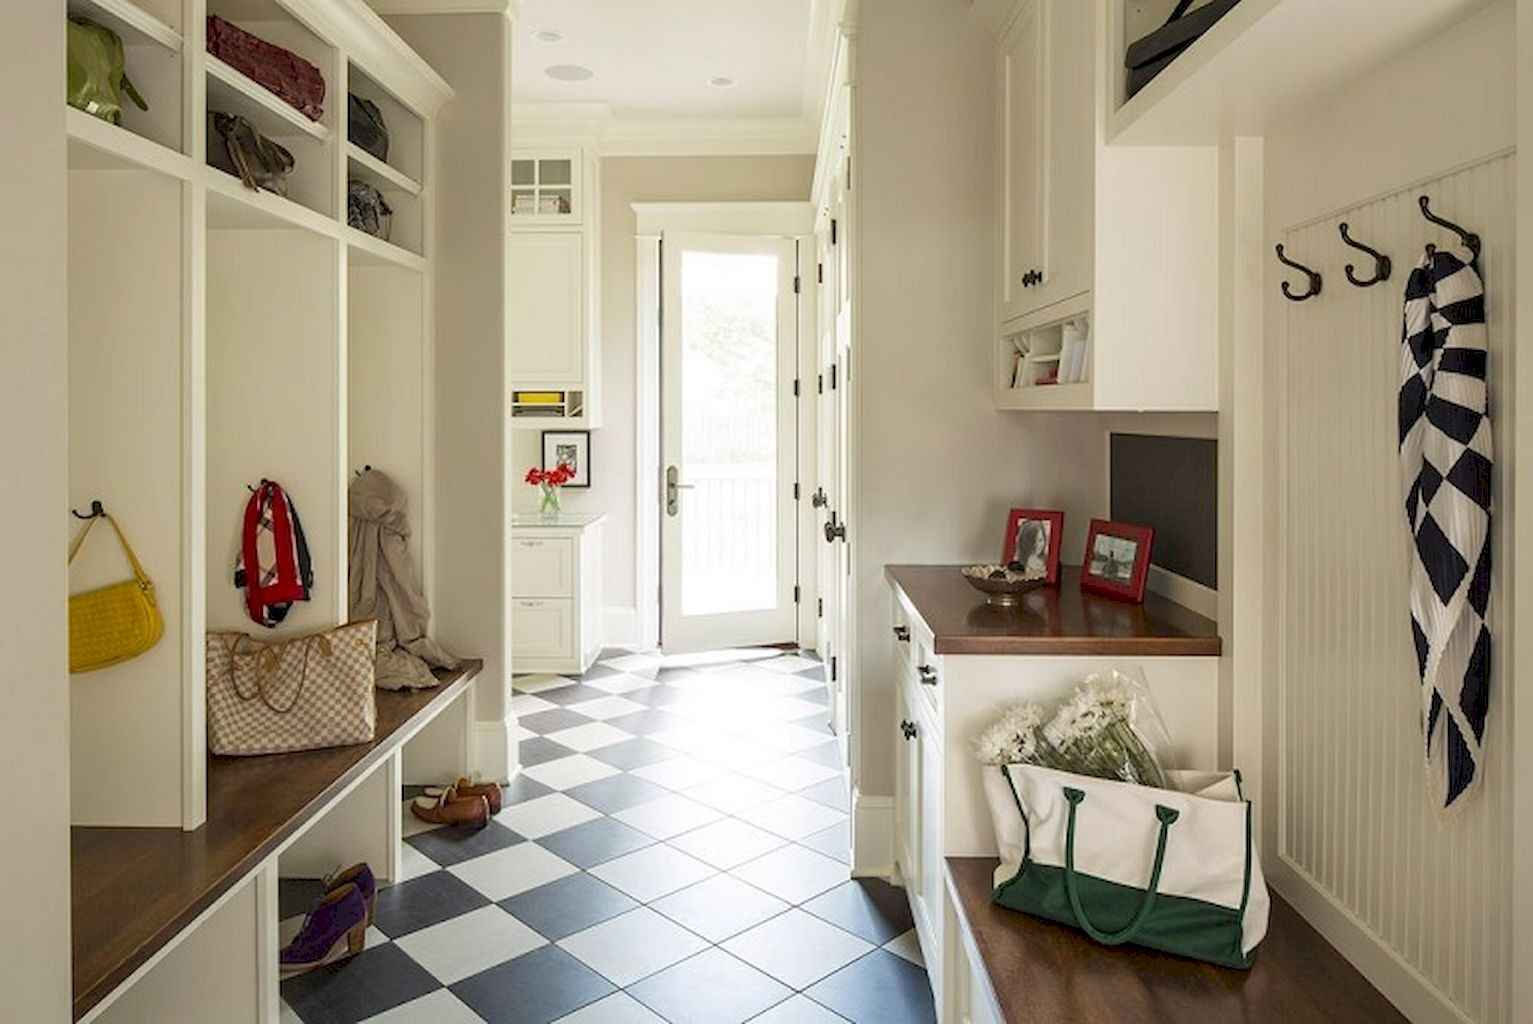 65 Cool Mudroom Design Ideas and Remodel (41)